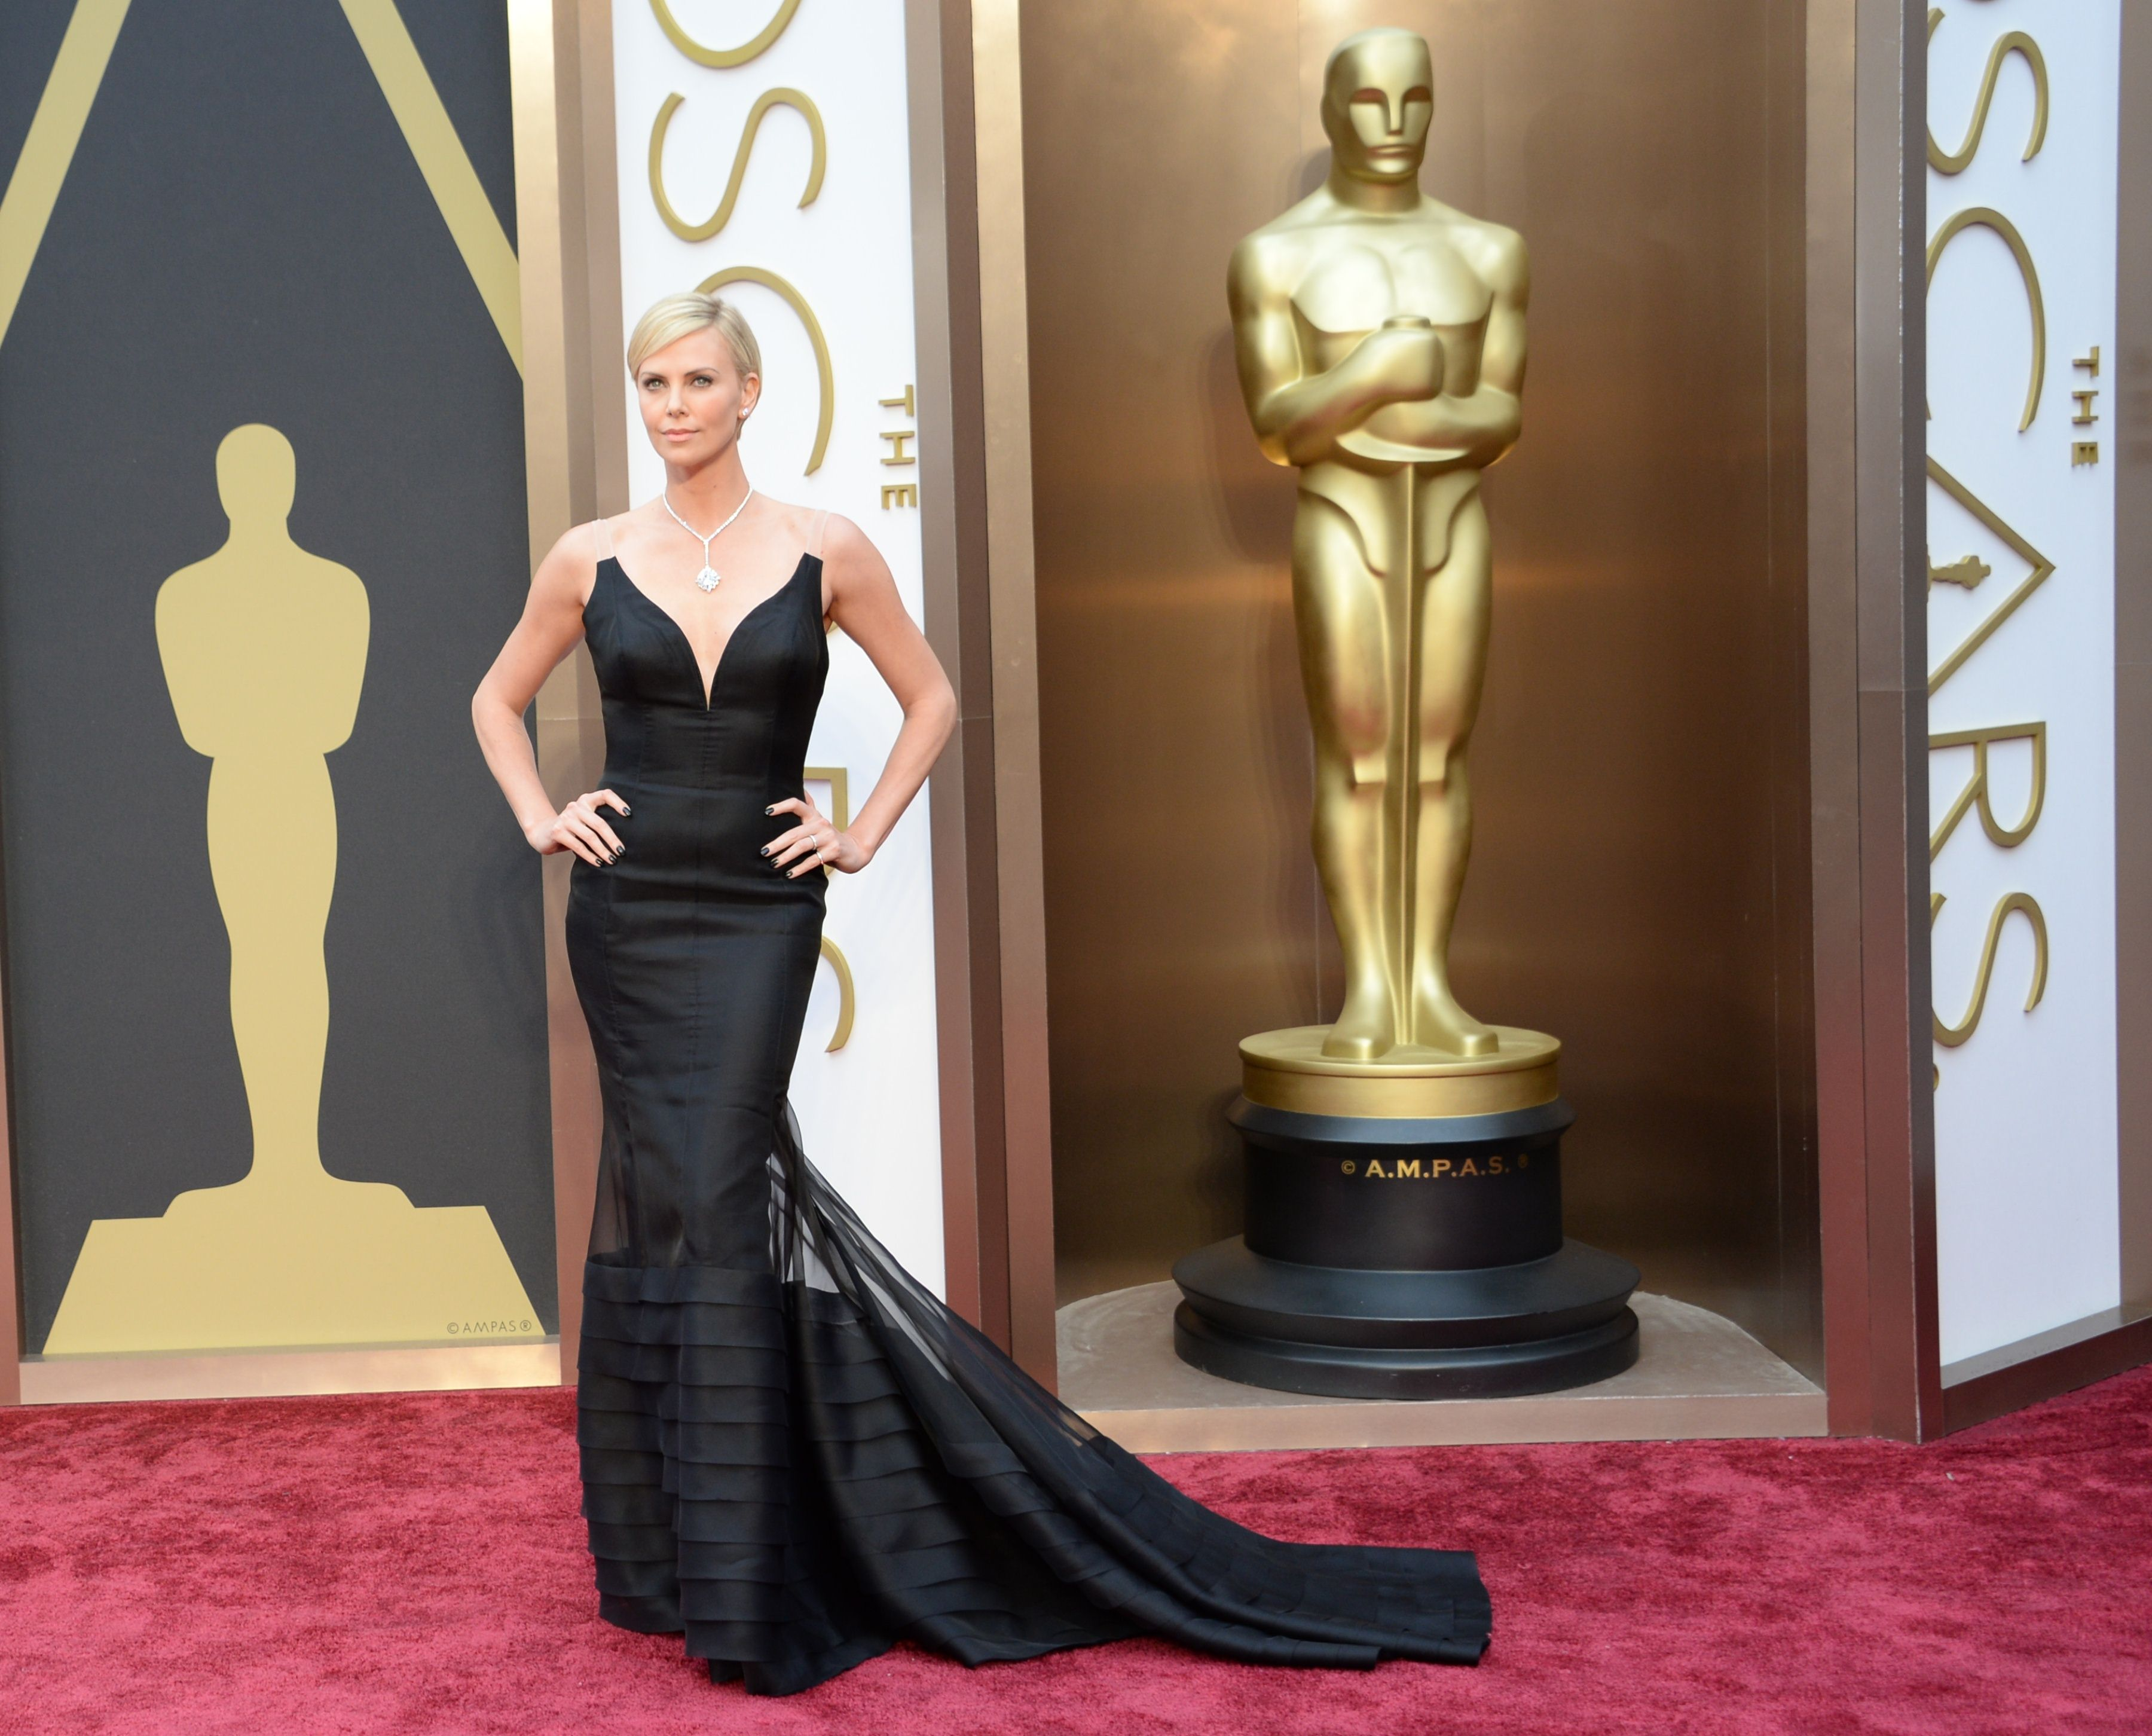 Oscars Fashion: Forget the awards, show me the gowns…